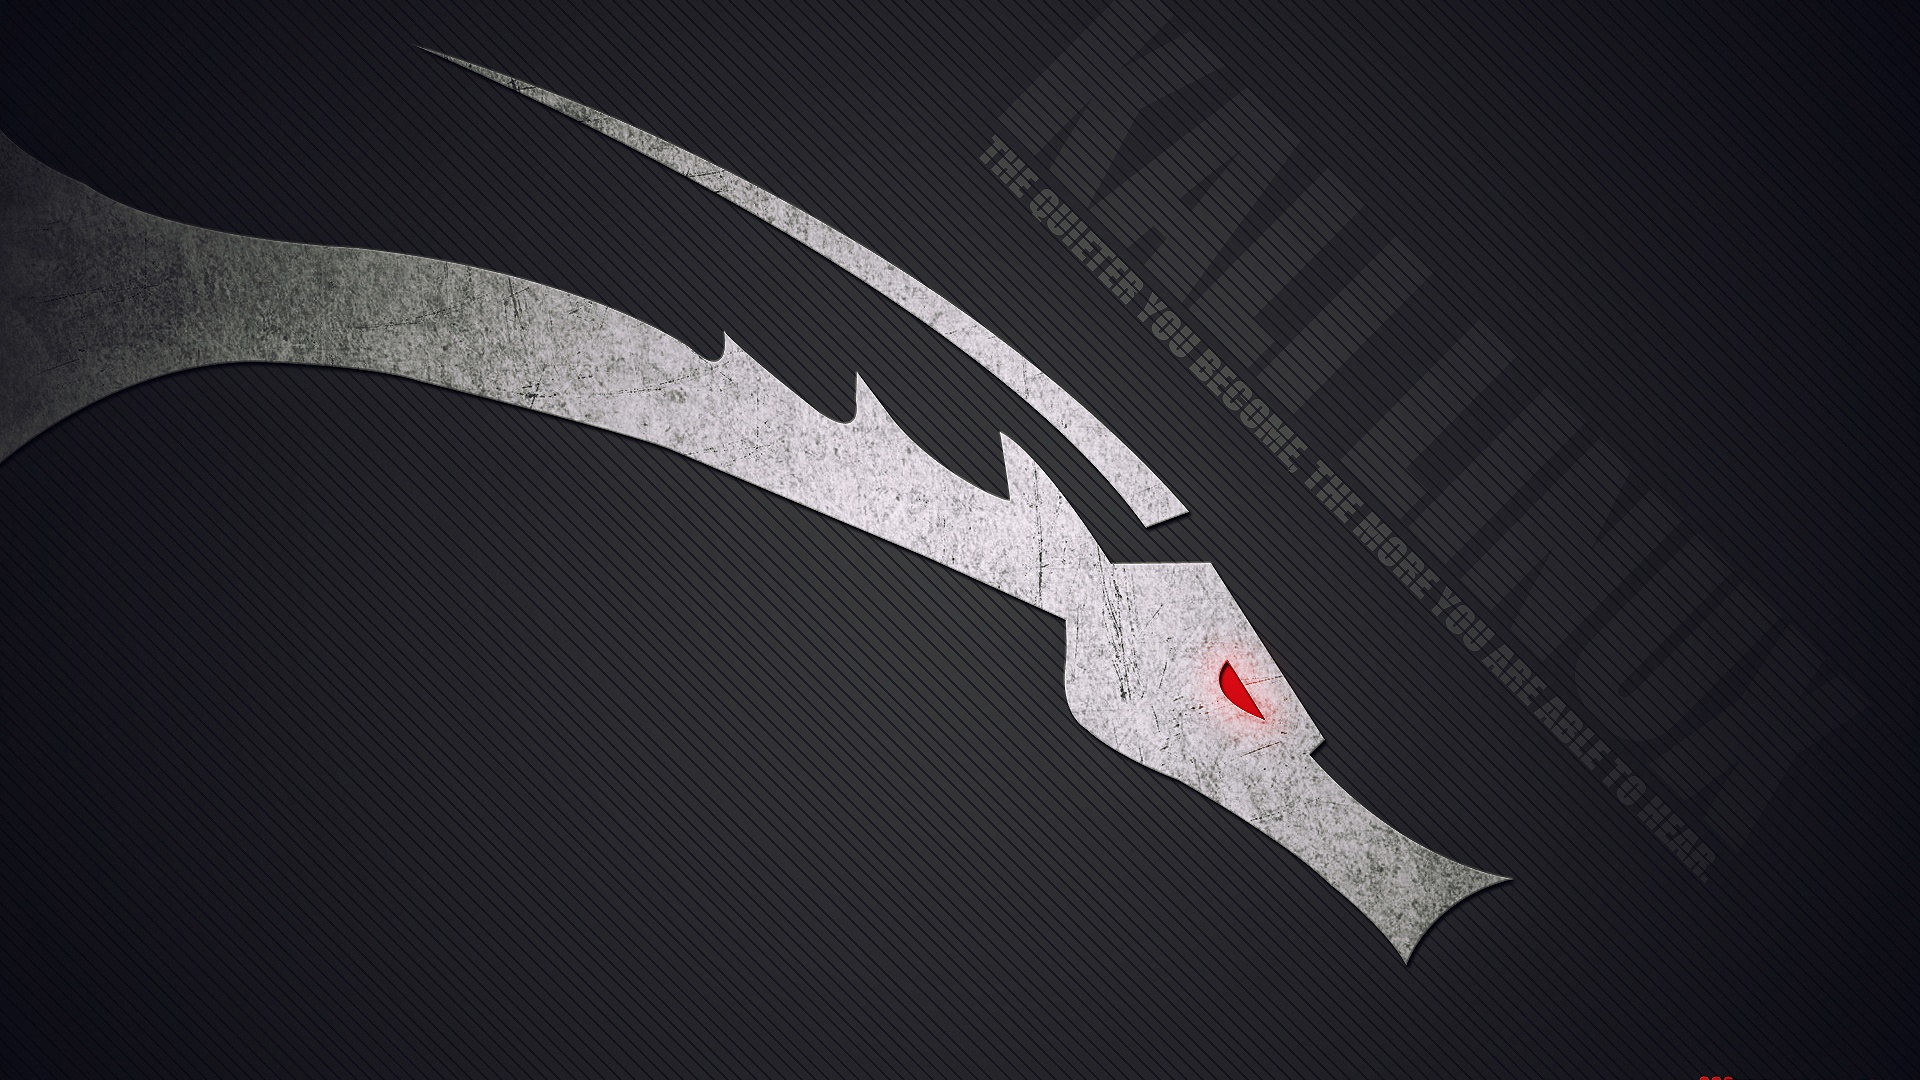 kali linux wallpaper hd - photo #20